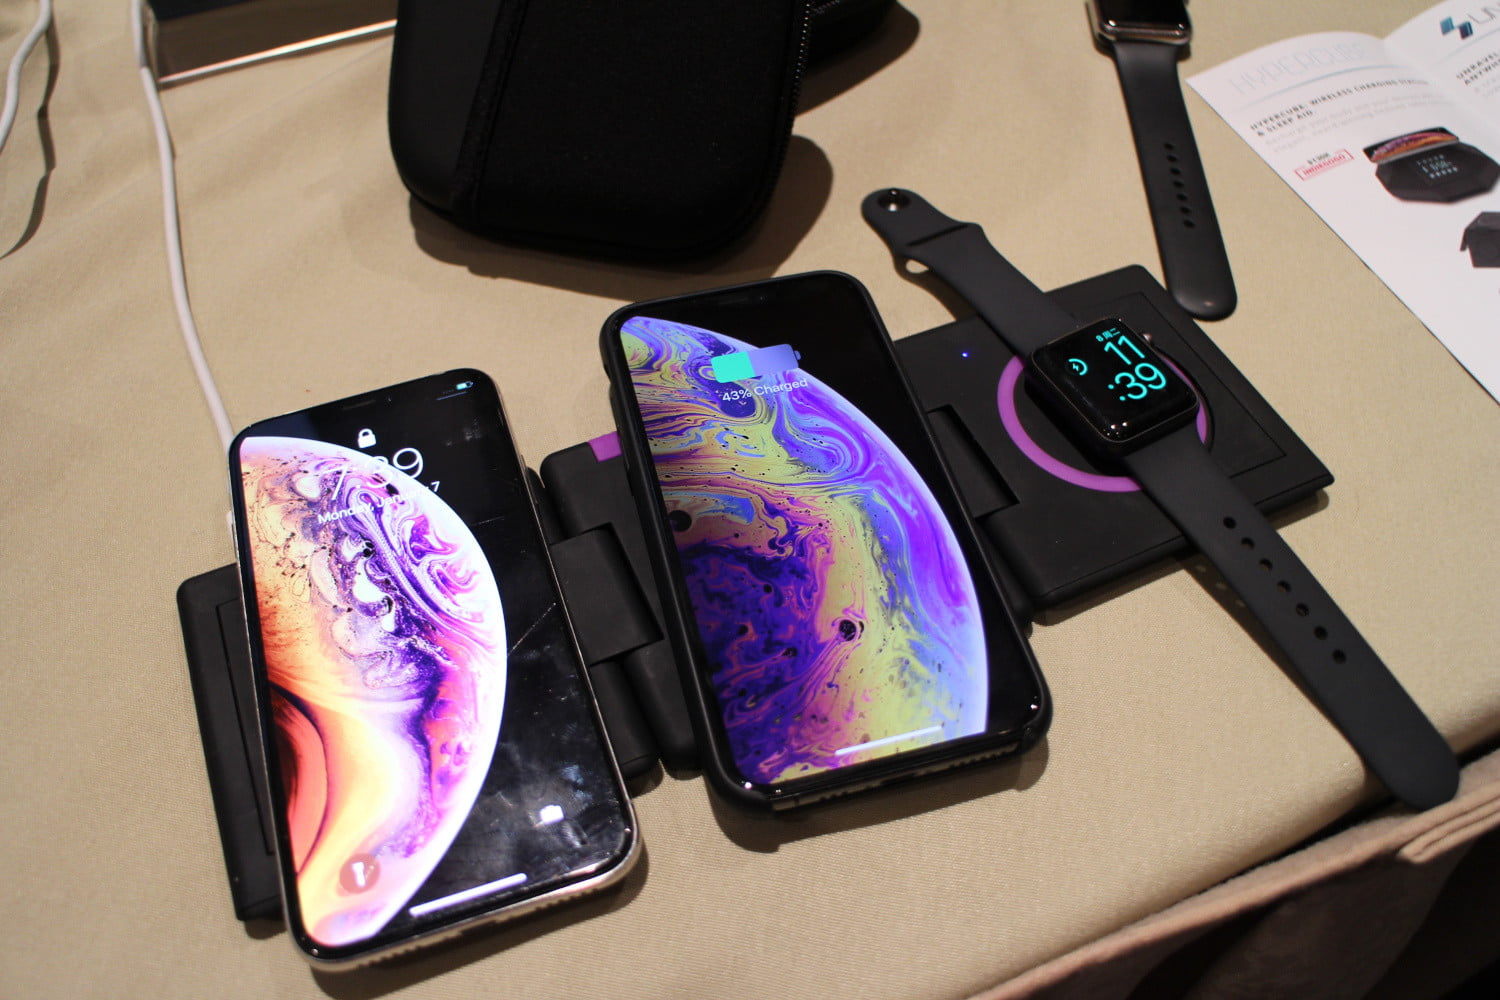 The best and most interesting mobile accessories at CES 2019